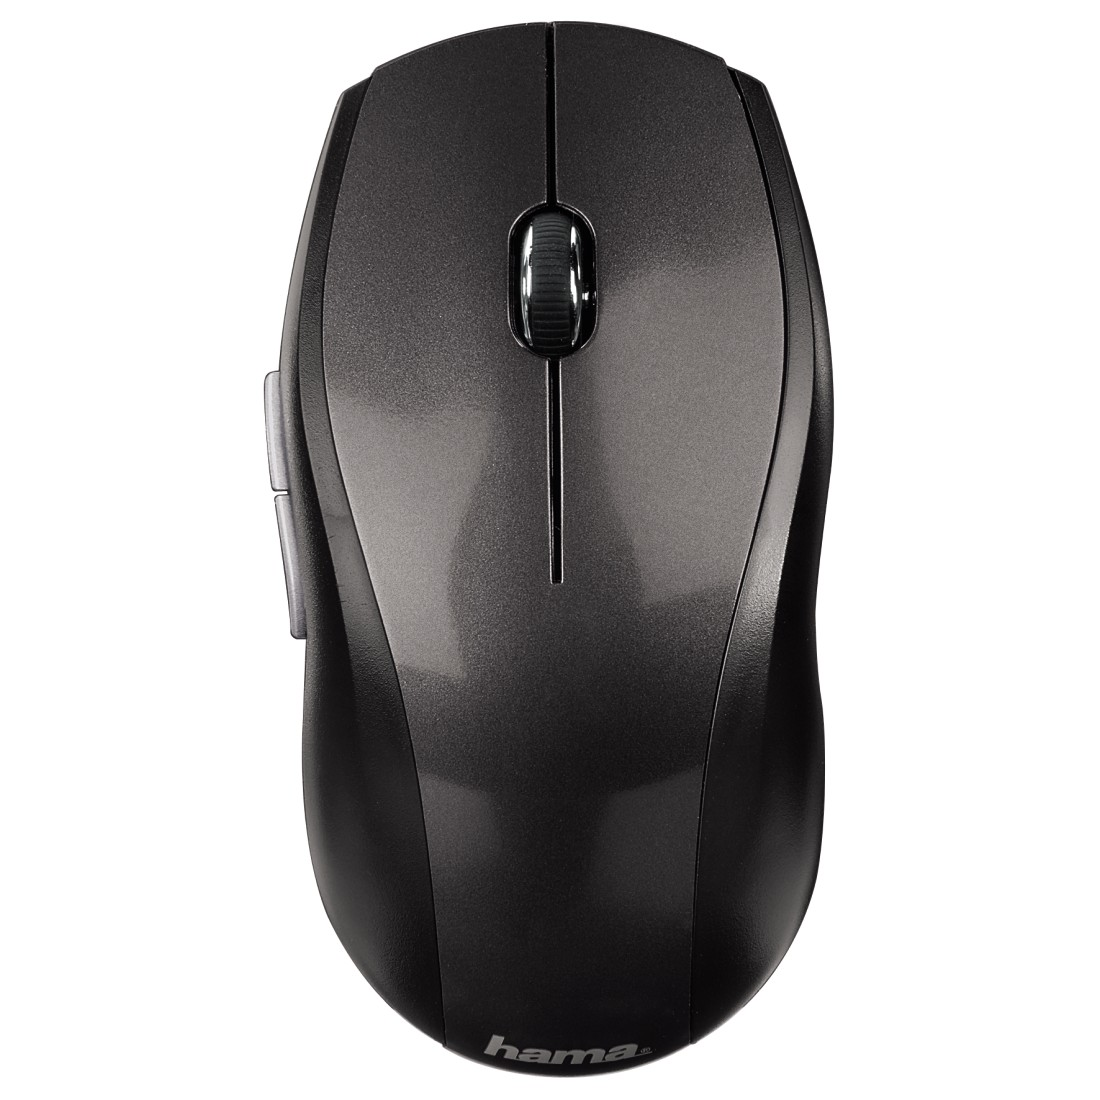 HAMA RF6000 WIRELESS LASER KEYBOARD/MOUSE DRIVER FOR WINDOWS 10